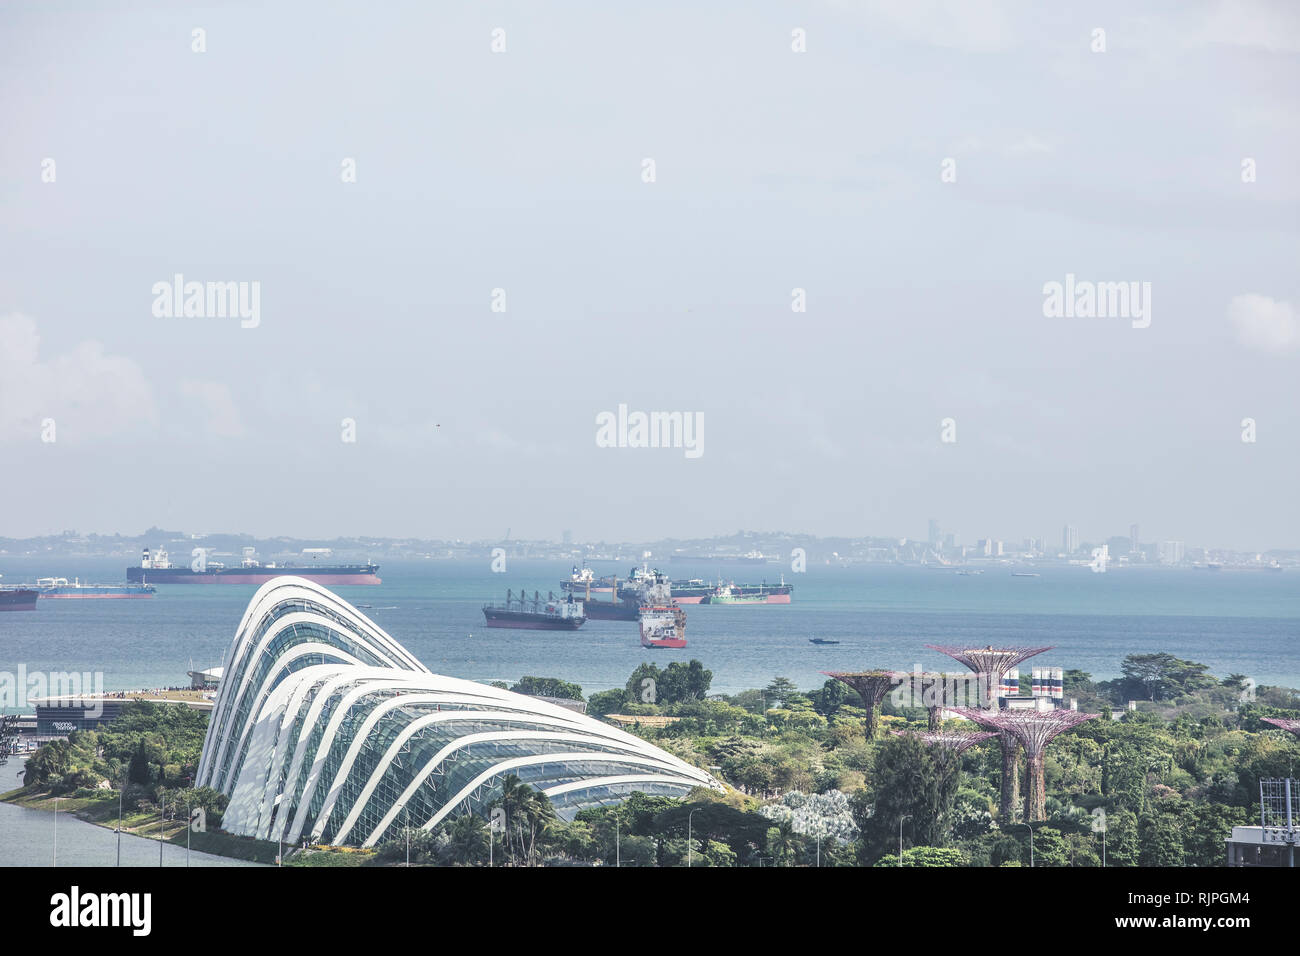 Singapore / Singapore - February 02 2019: Singapore gardens by the bay and flower dome with sea aerial view in elegant retro muted colours - Stock Image